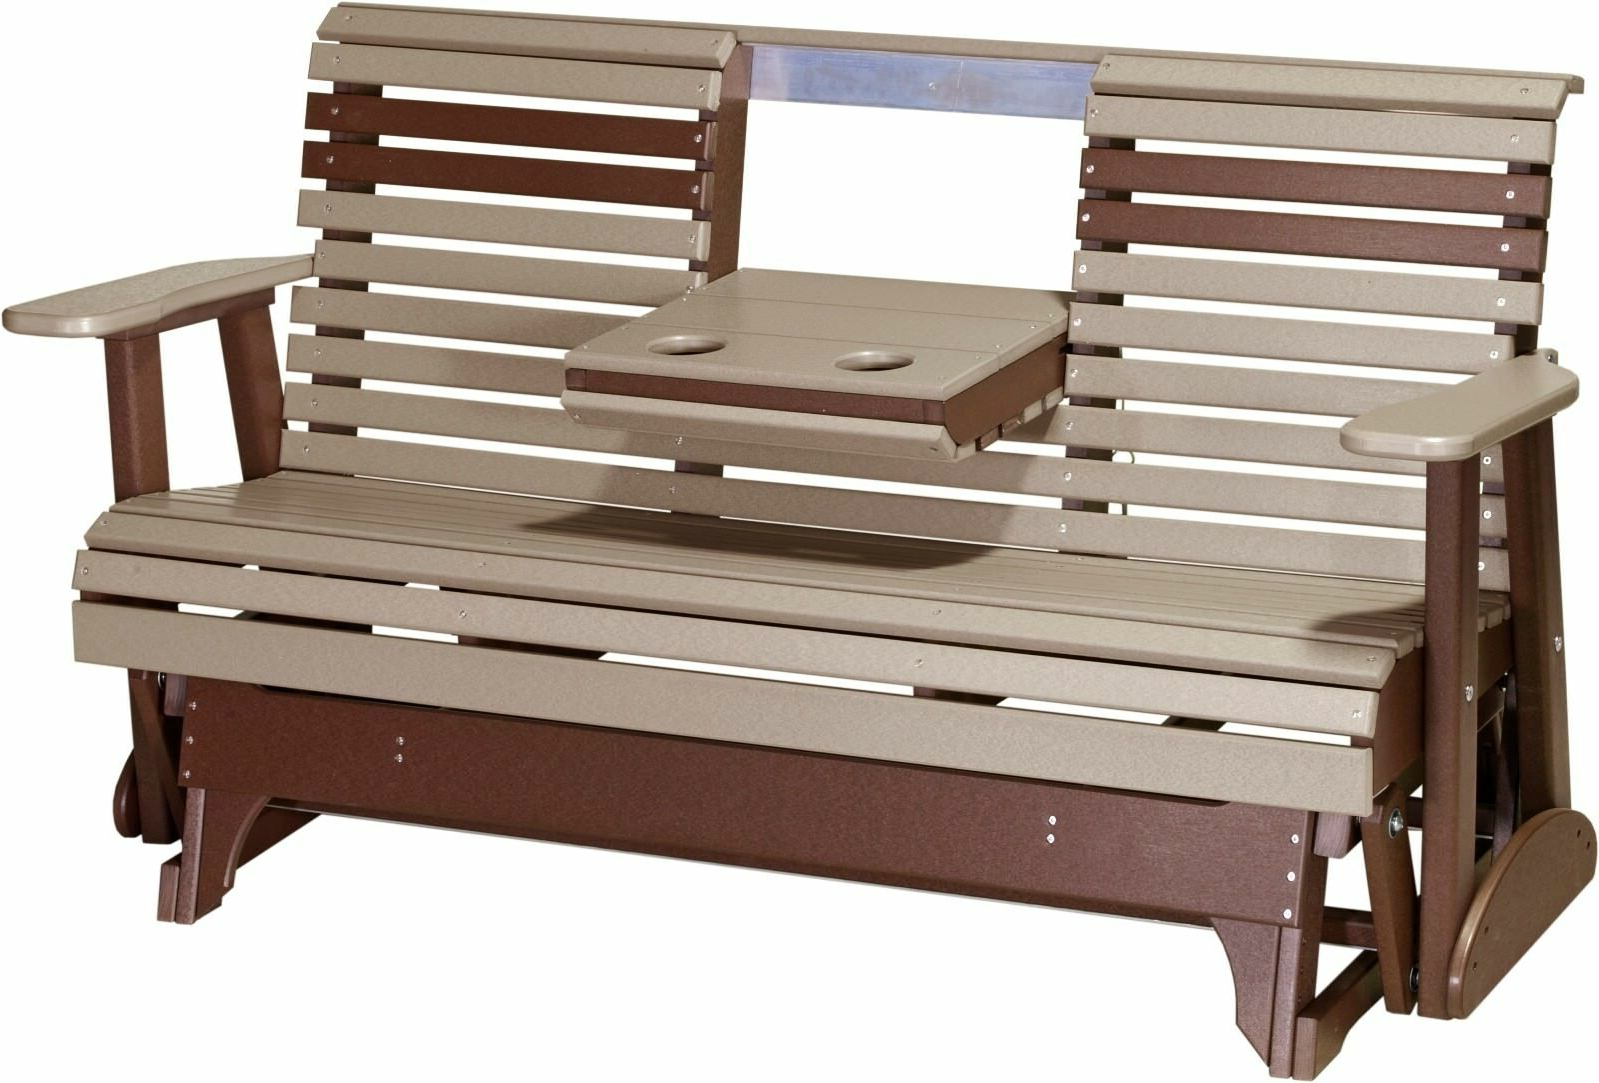 Center Table Double Glider Benches Intended For Well Known Outdoor Poly Lumber 5 Ft Rollback Glider *weatherwood & Brown* Recycled  Plastic (Gallery 21 of 30)